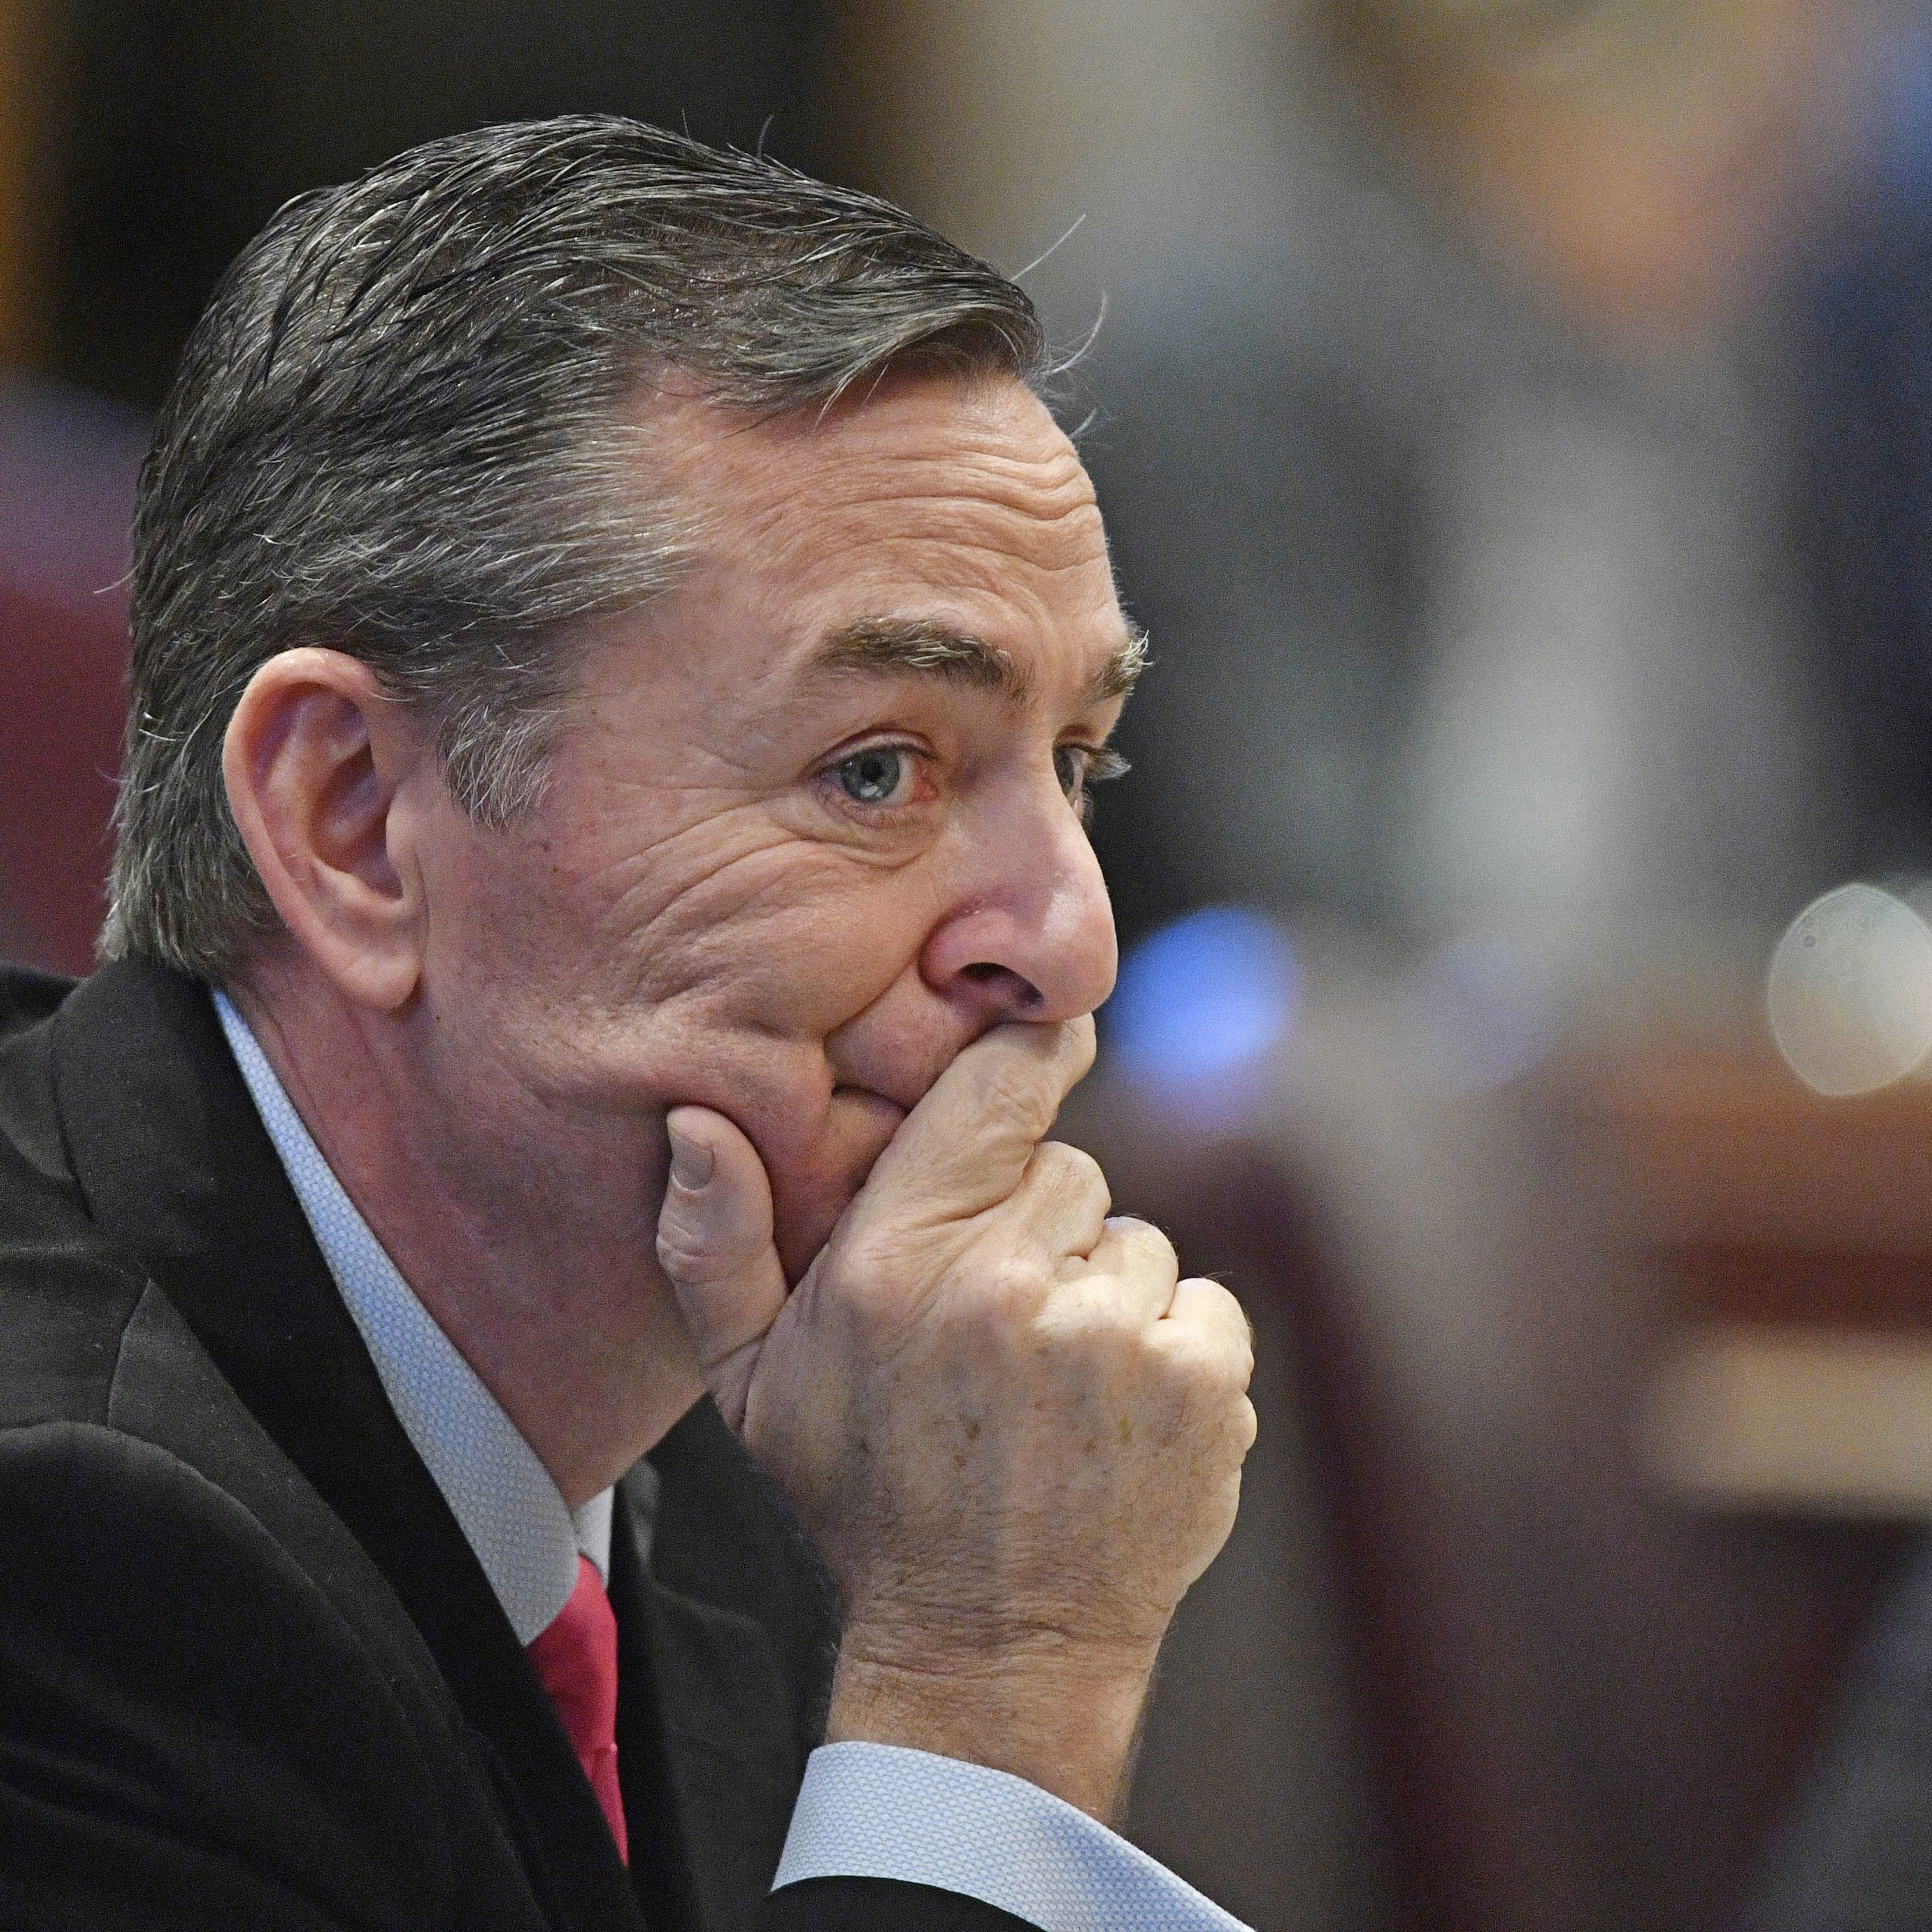 White noise machines installed in Glen Casada's office; ex-aide eavesdropped on meeting rooms